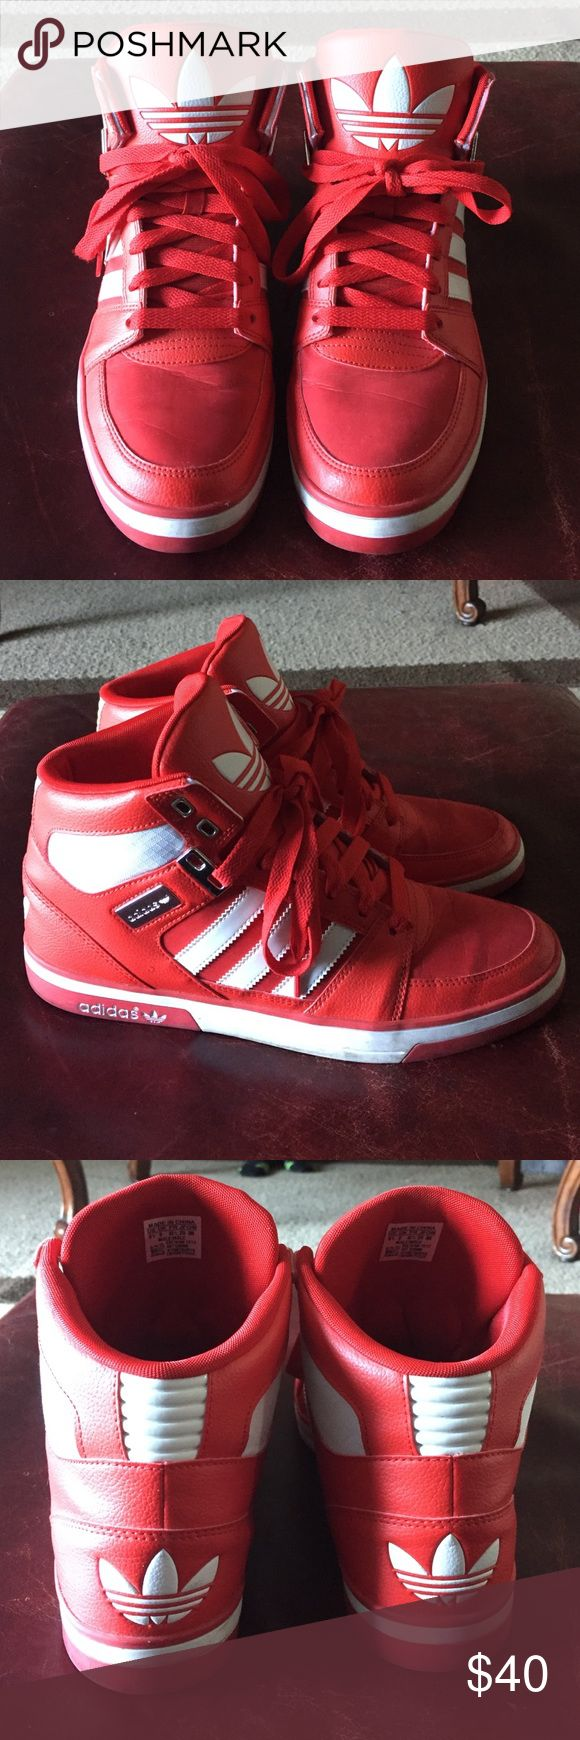 Men's Adidas Originals Hard Court Hi II Shoes Size 9.5 men's. Red, white and silver hi tops. Preowned. Puma Shoes Sneakers